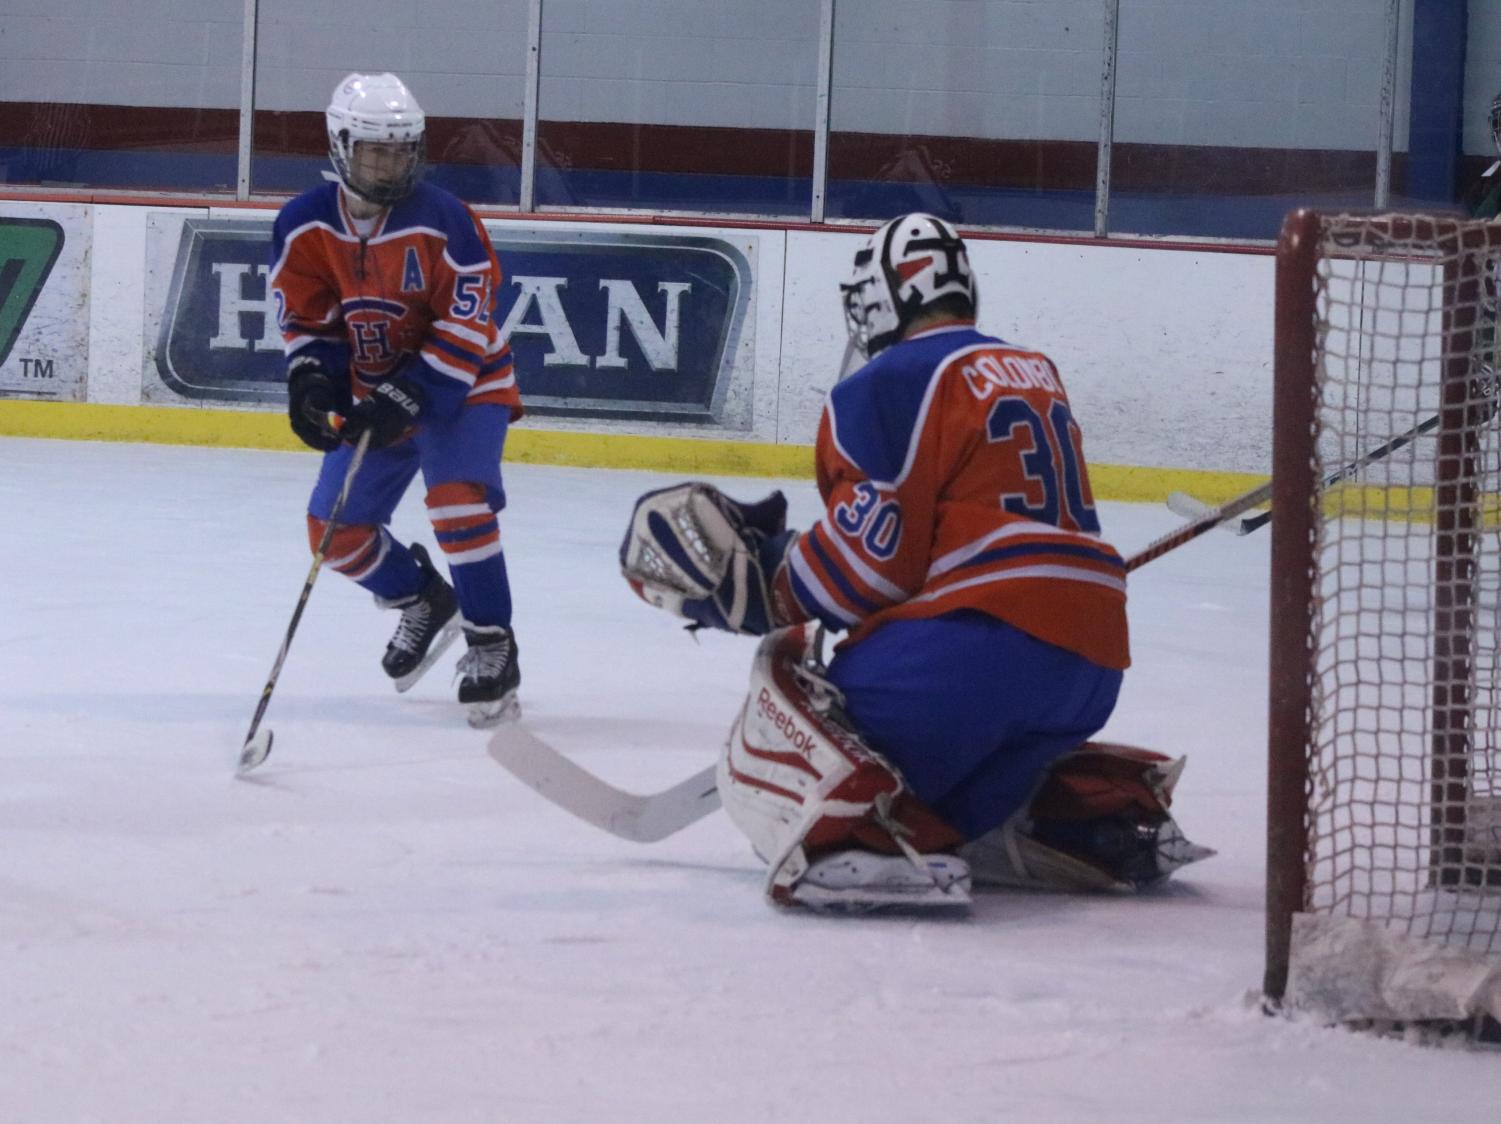 Duchesne High School Ice Hockey Hockey Hounds Take Down Lutheran South Lancers For Late Season